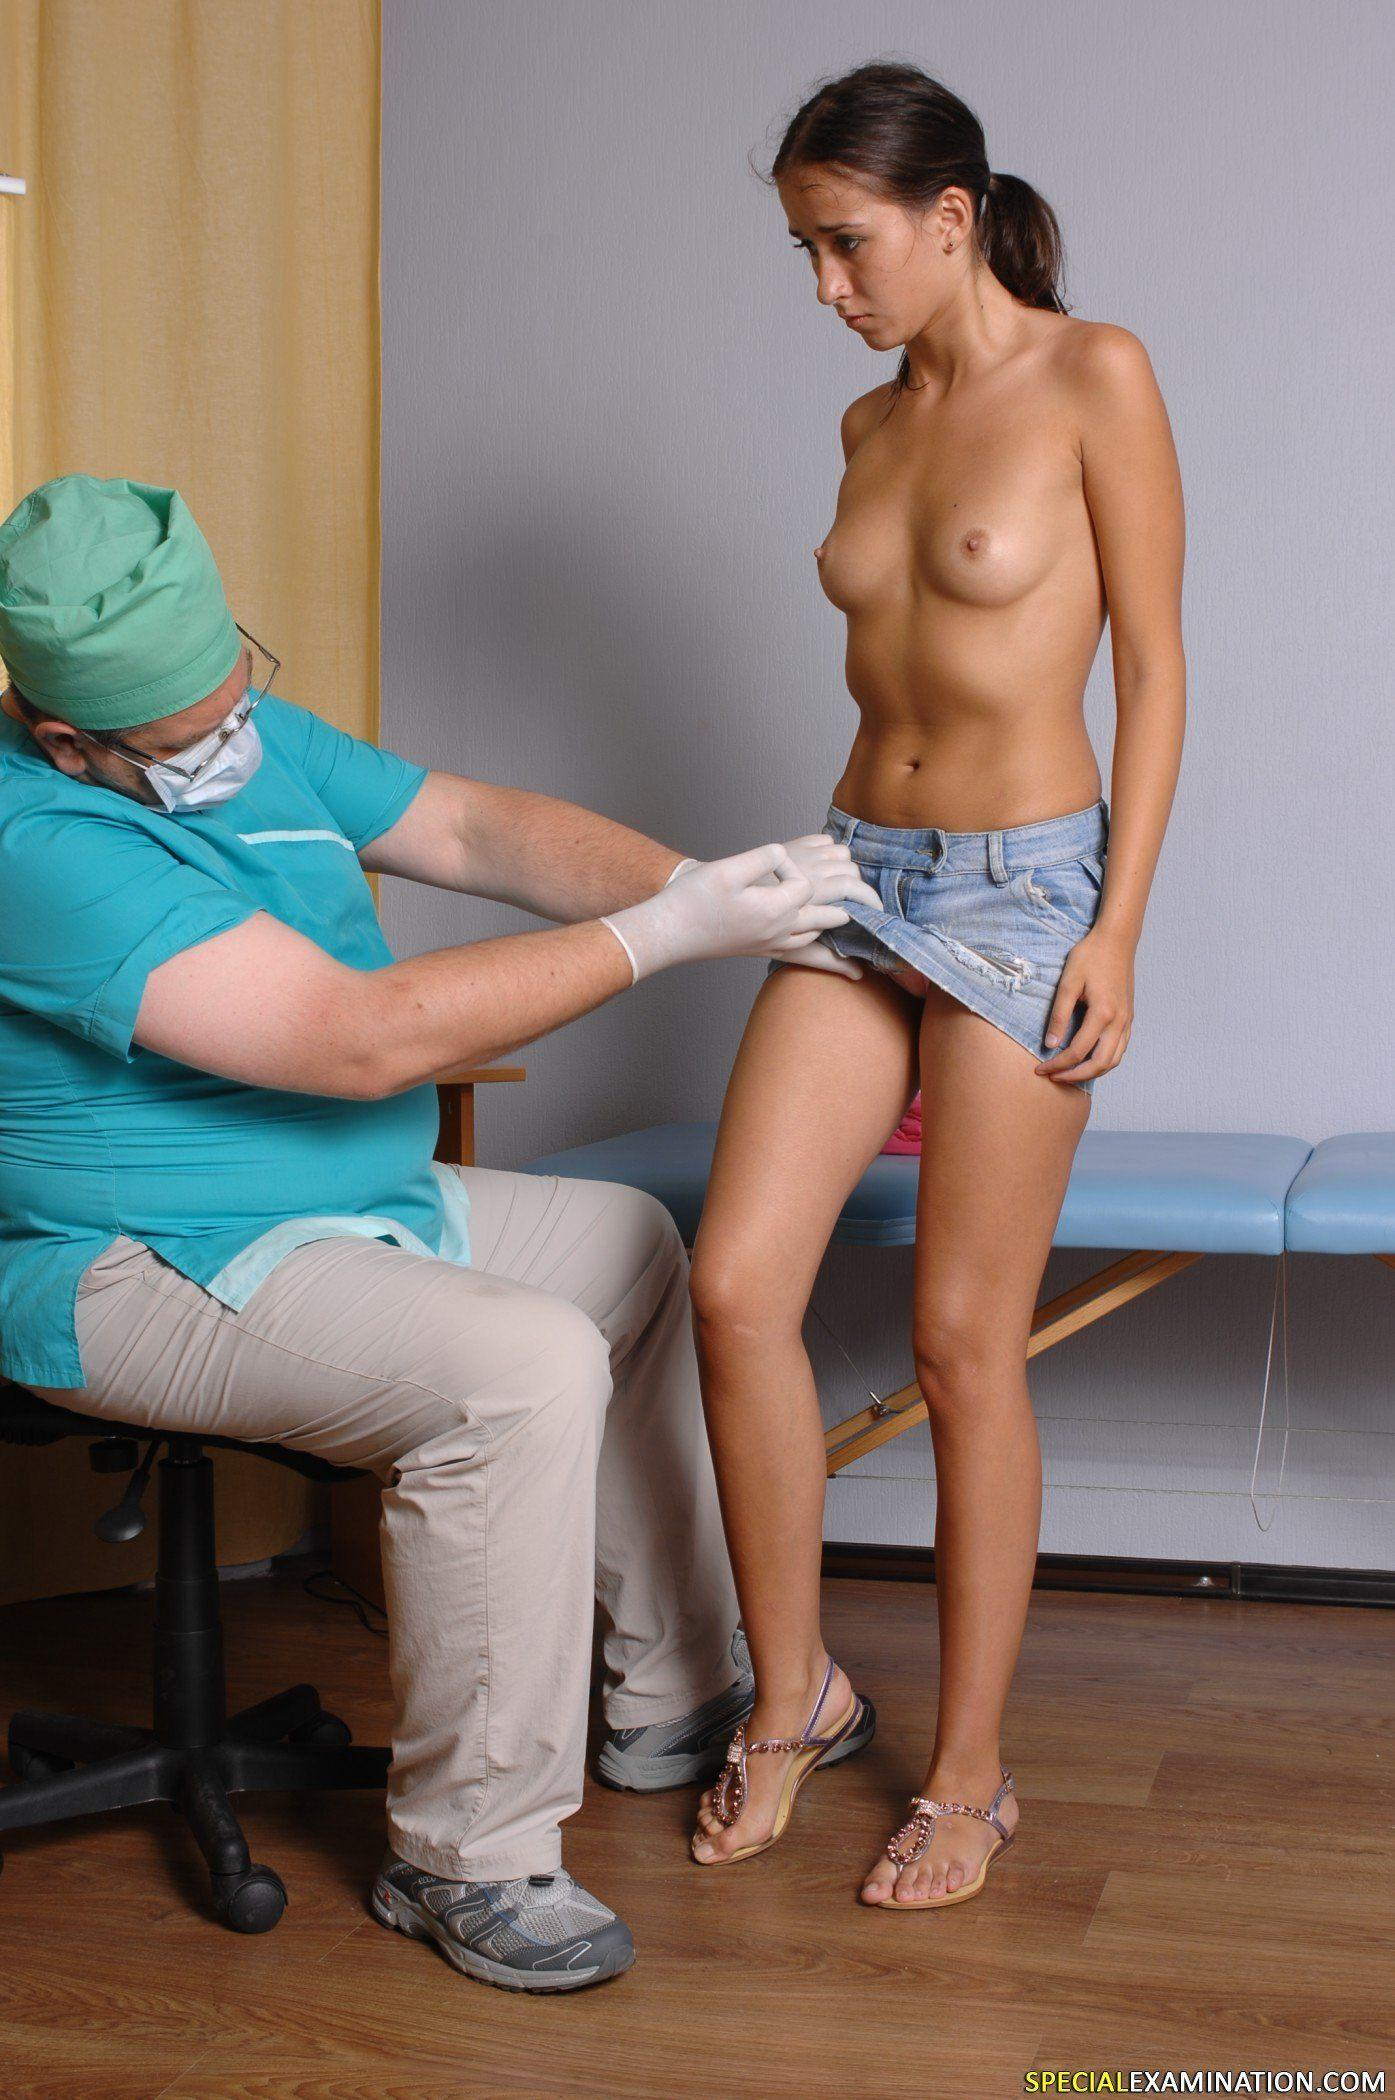 special examination porn Free HD Special medical exam for young couple Porn Video